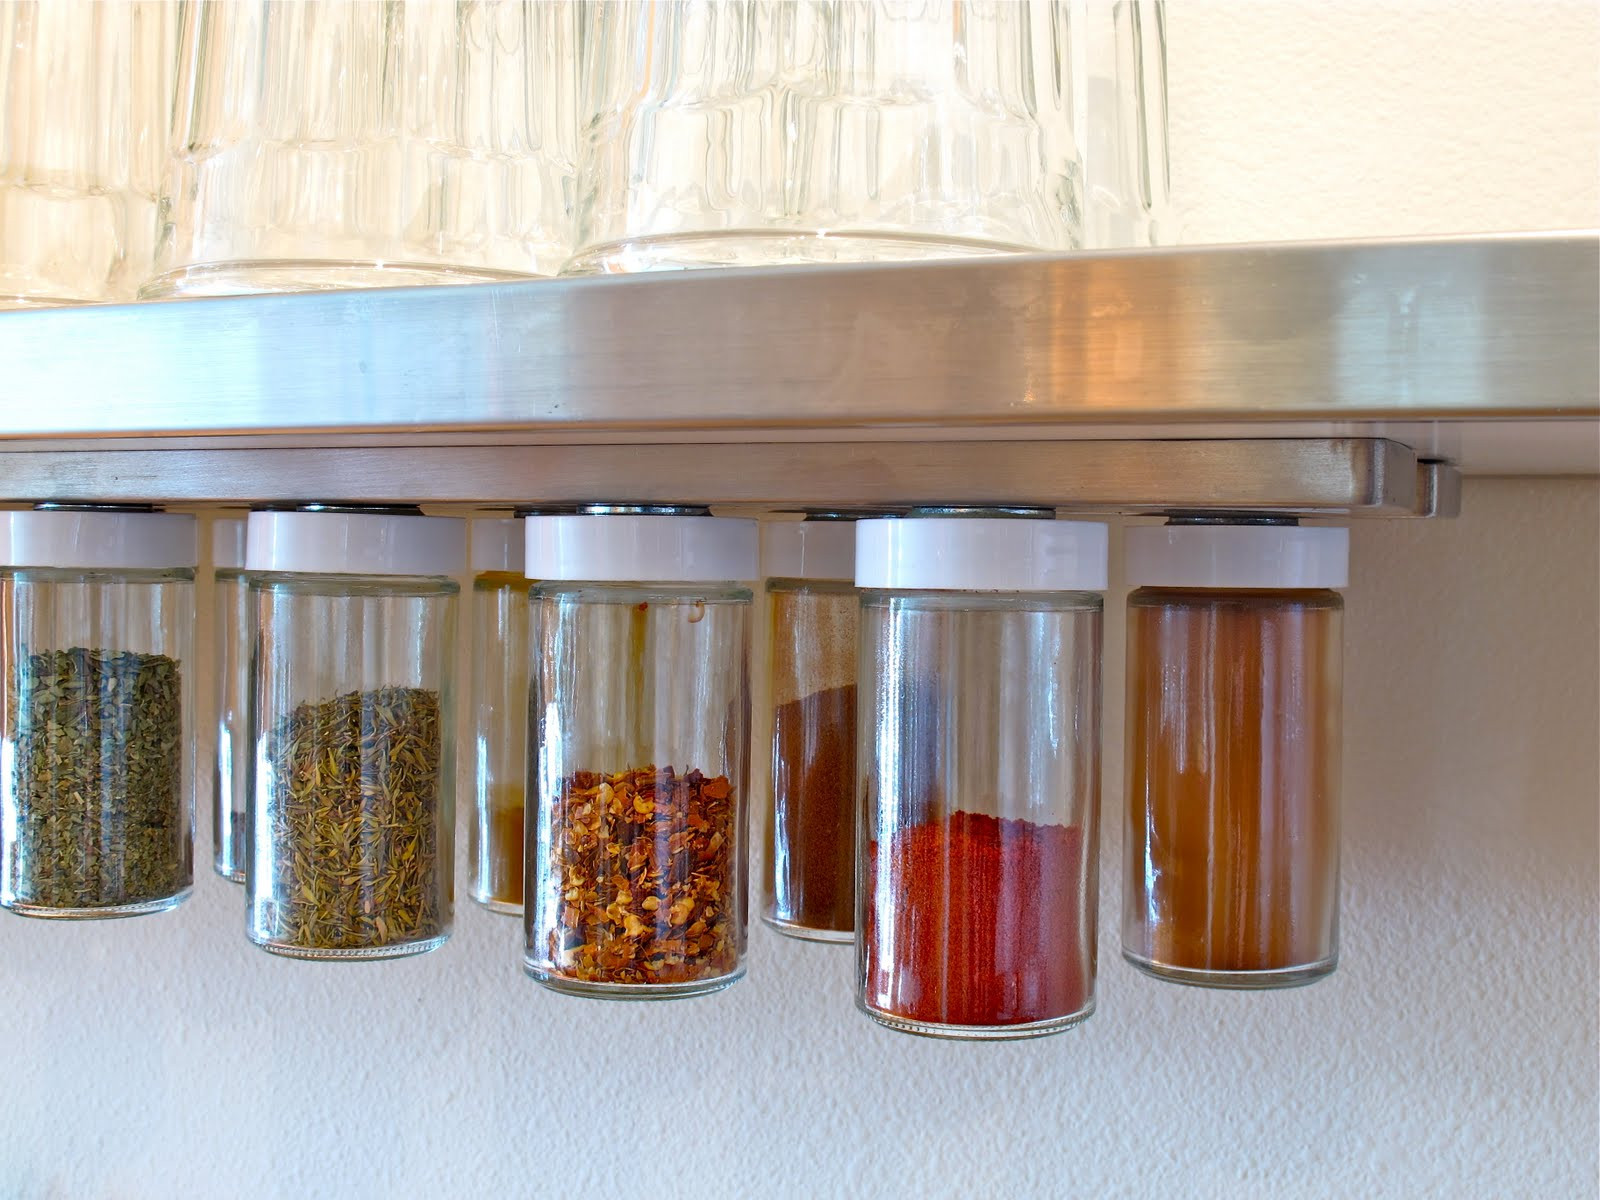 Best ideas about DIY Spice Organizer . Save or Pin BluKatKraft DIY Hanging Magnetic Spice Rack Storage Now.